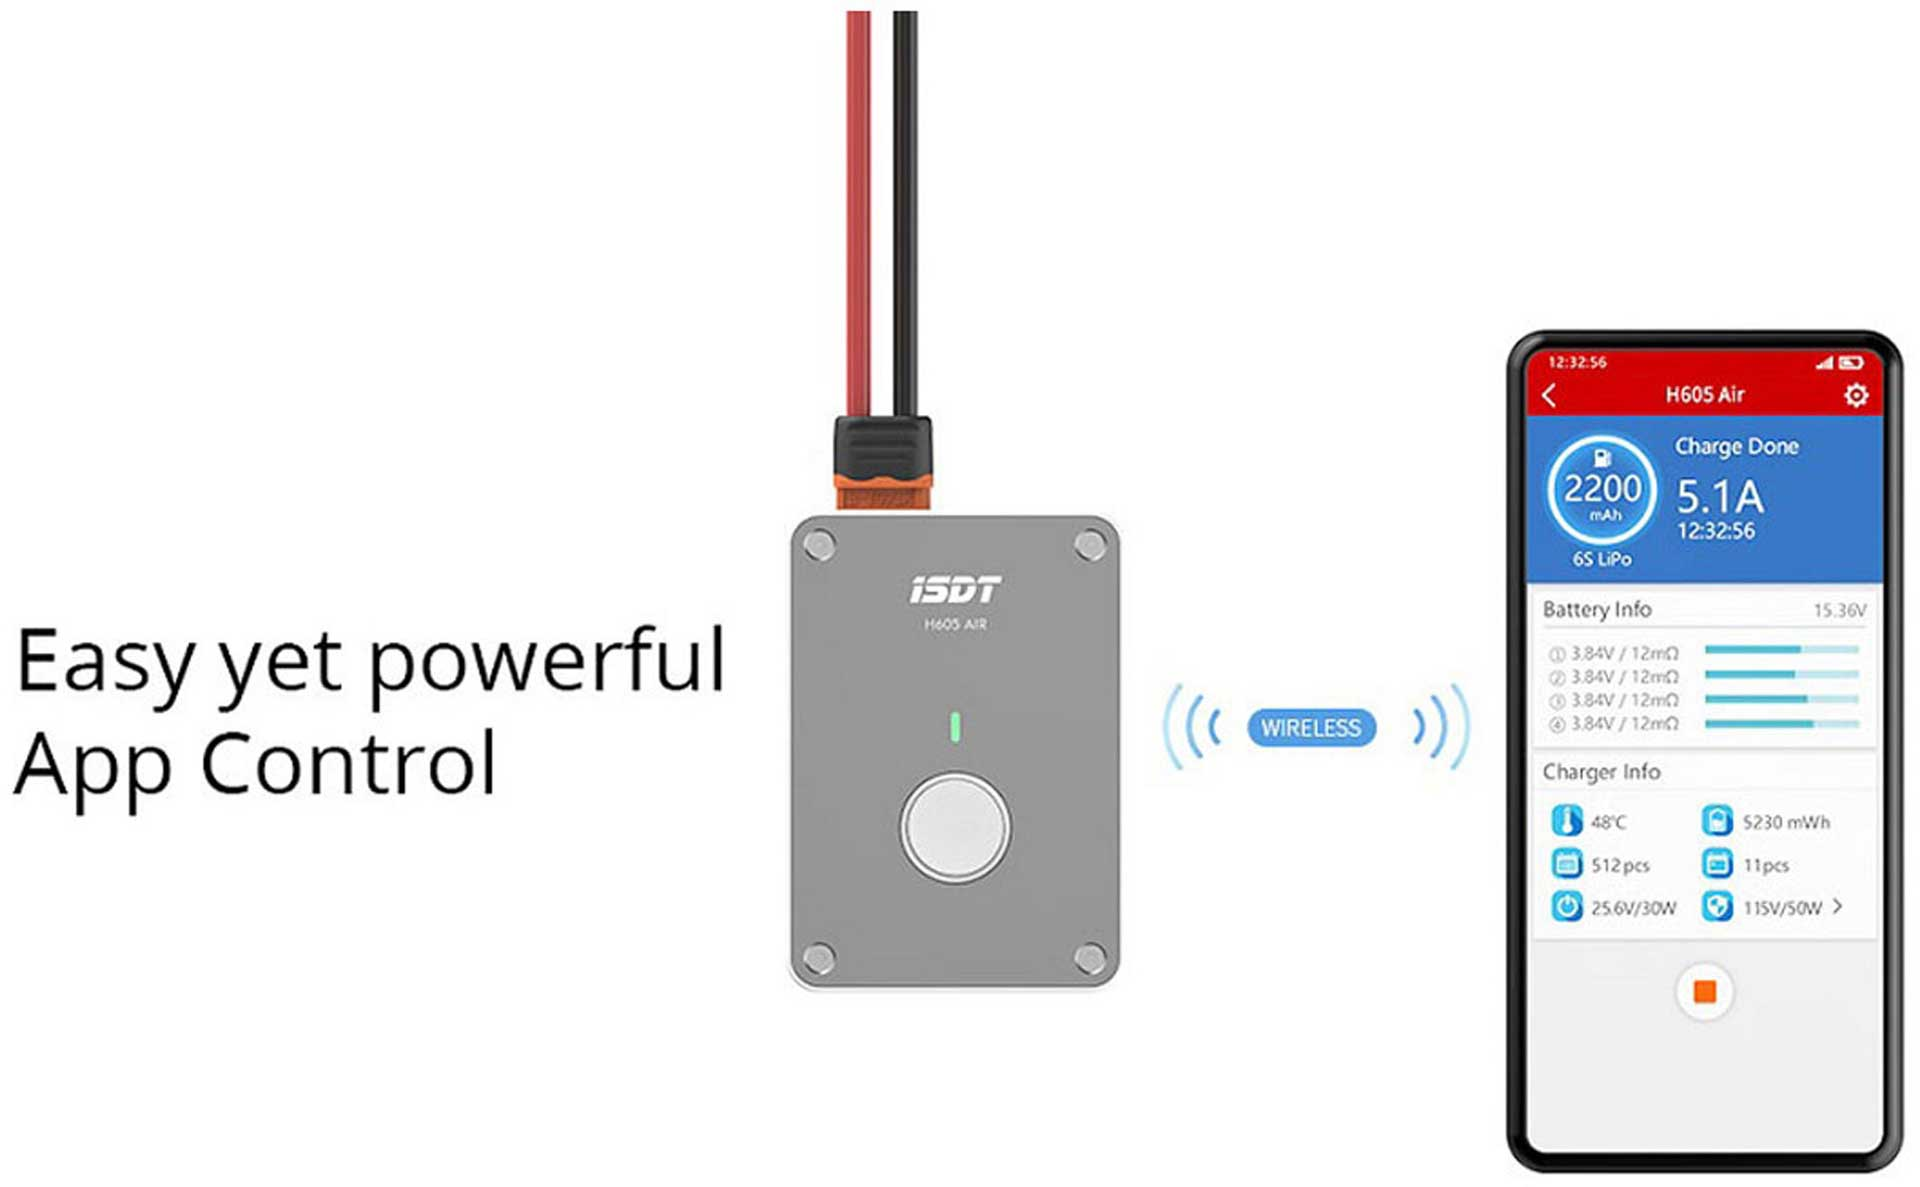 ISDT H605 AIR 50W 6S SMART CHARGER Ladegerät